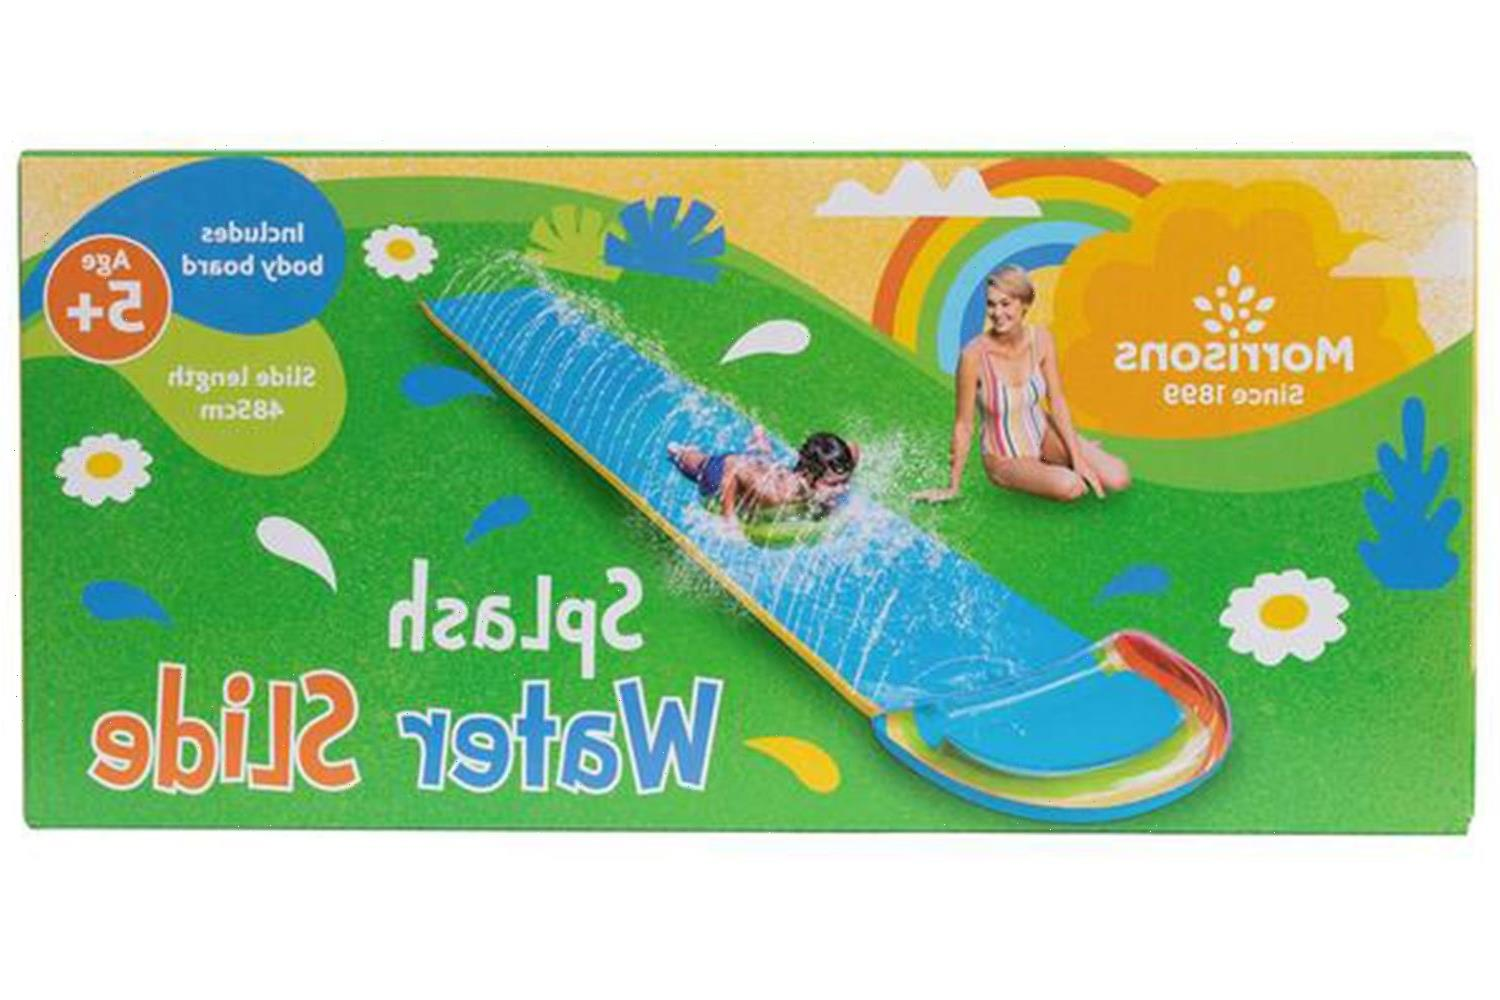 Morrisons is selling a water slide for £8 – up to £10 cheaper than rivals